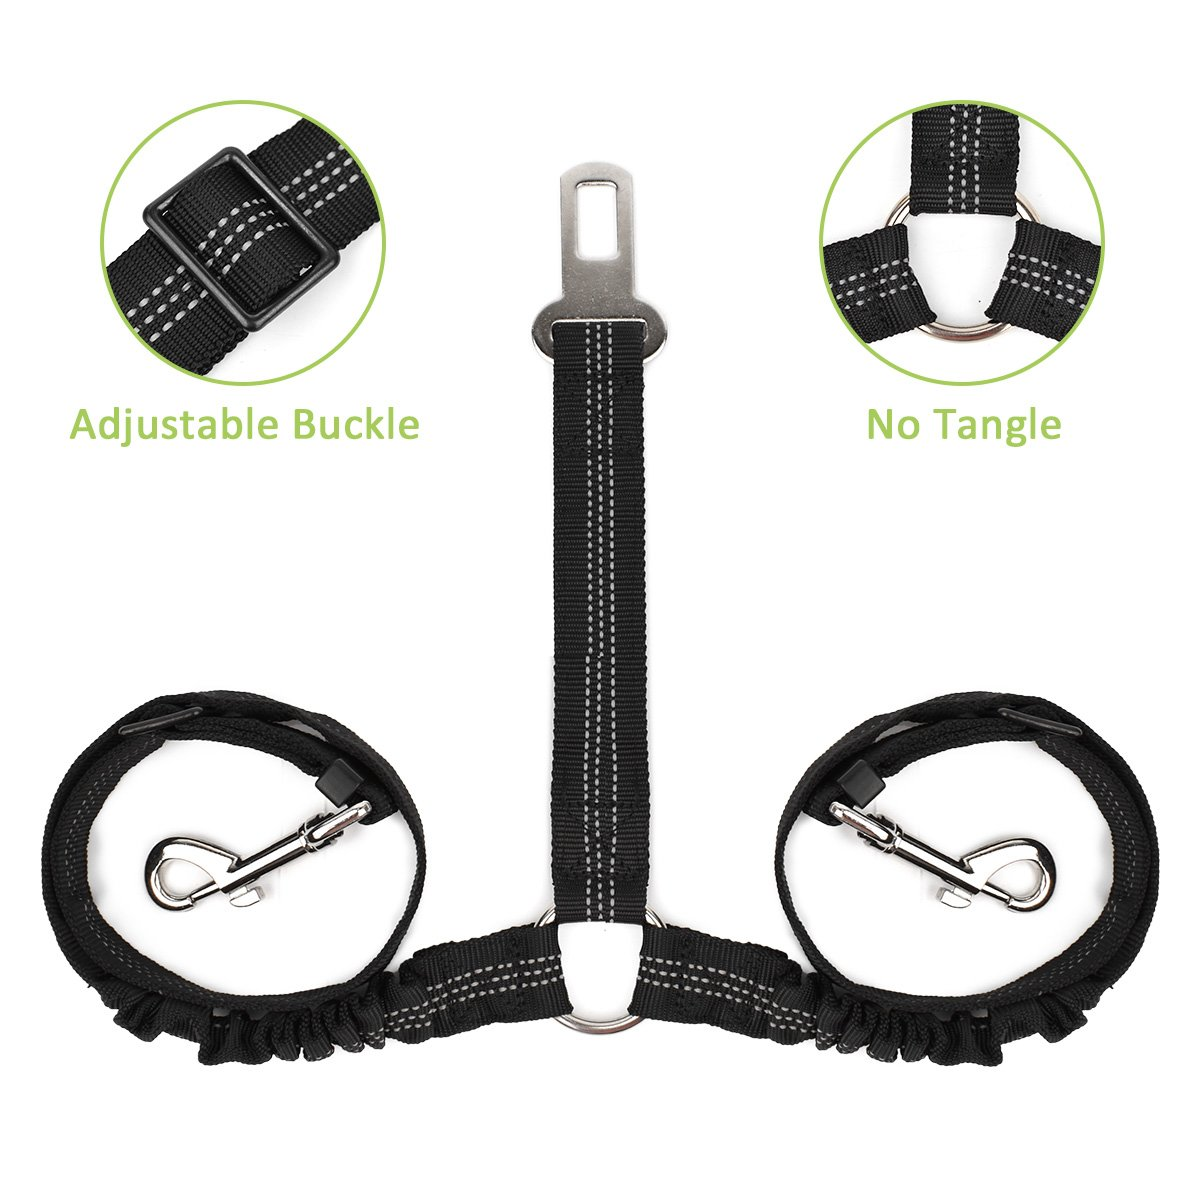 50%Off Double Dog Seat belt Car safety, 2 in 1, No Tangle Elastic bungee Coupler